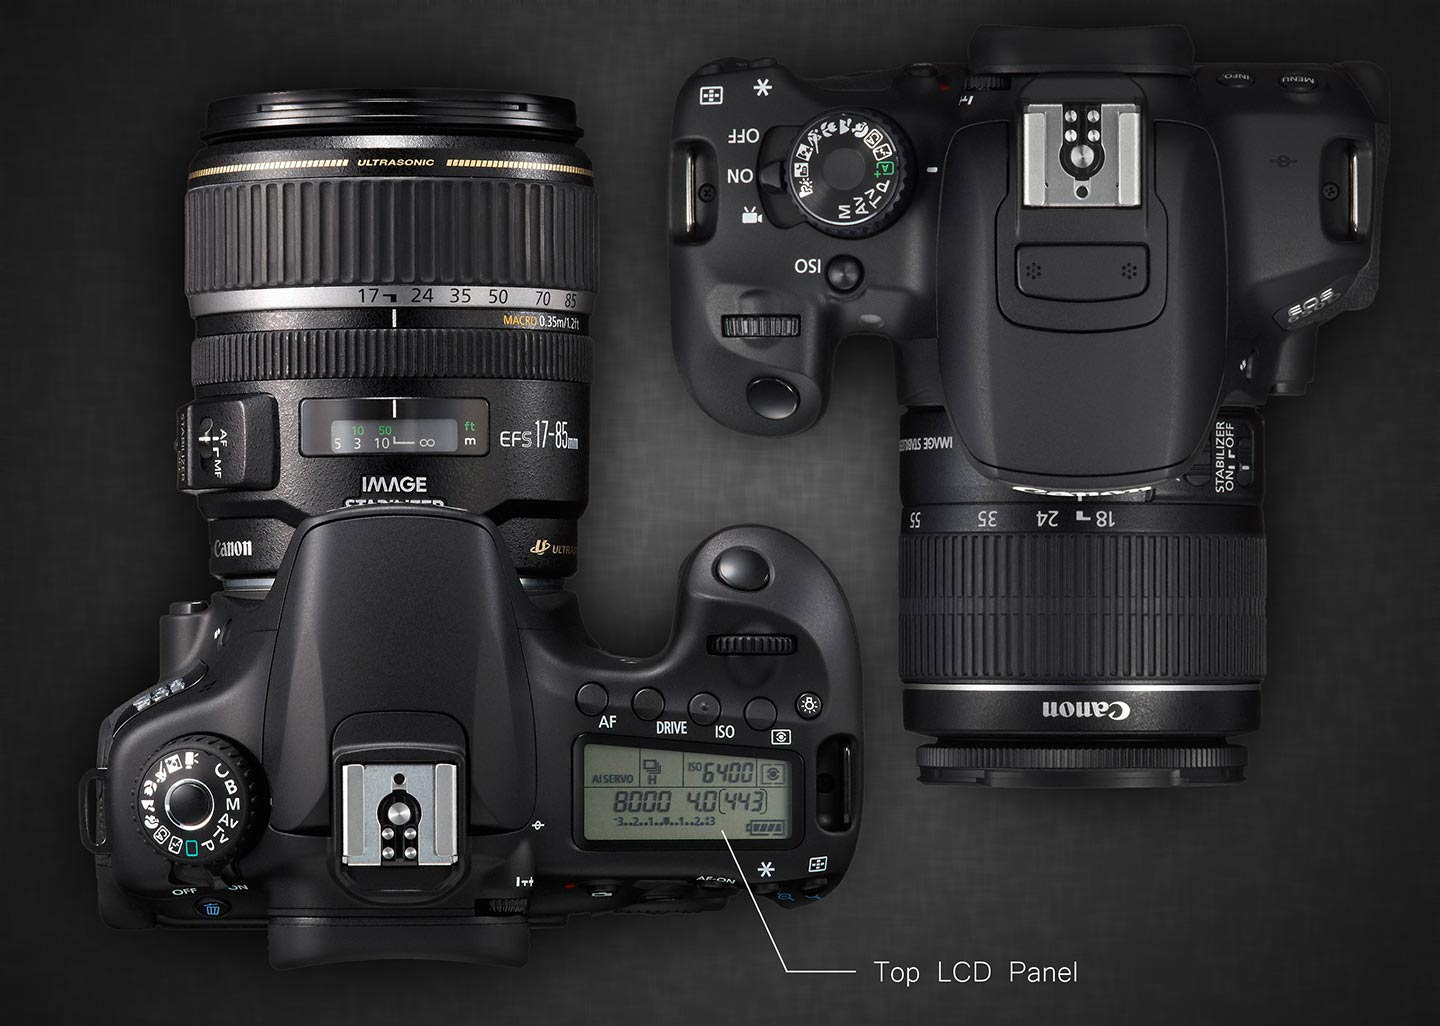 Canon T4i and 60D TOP LCD Panel